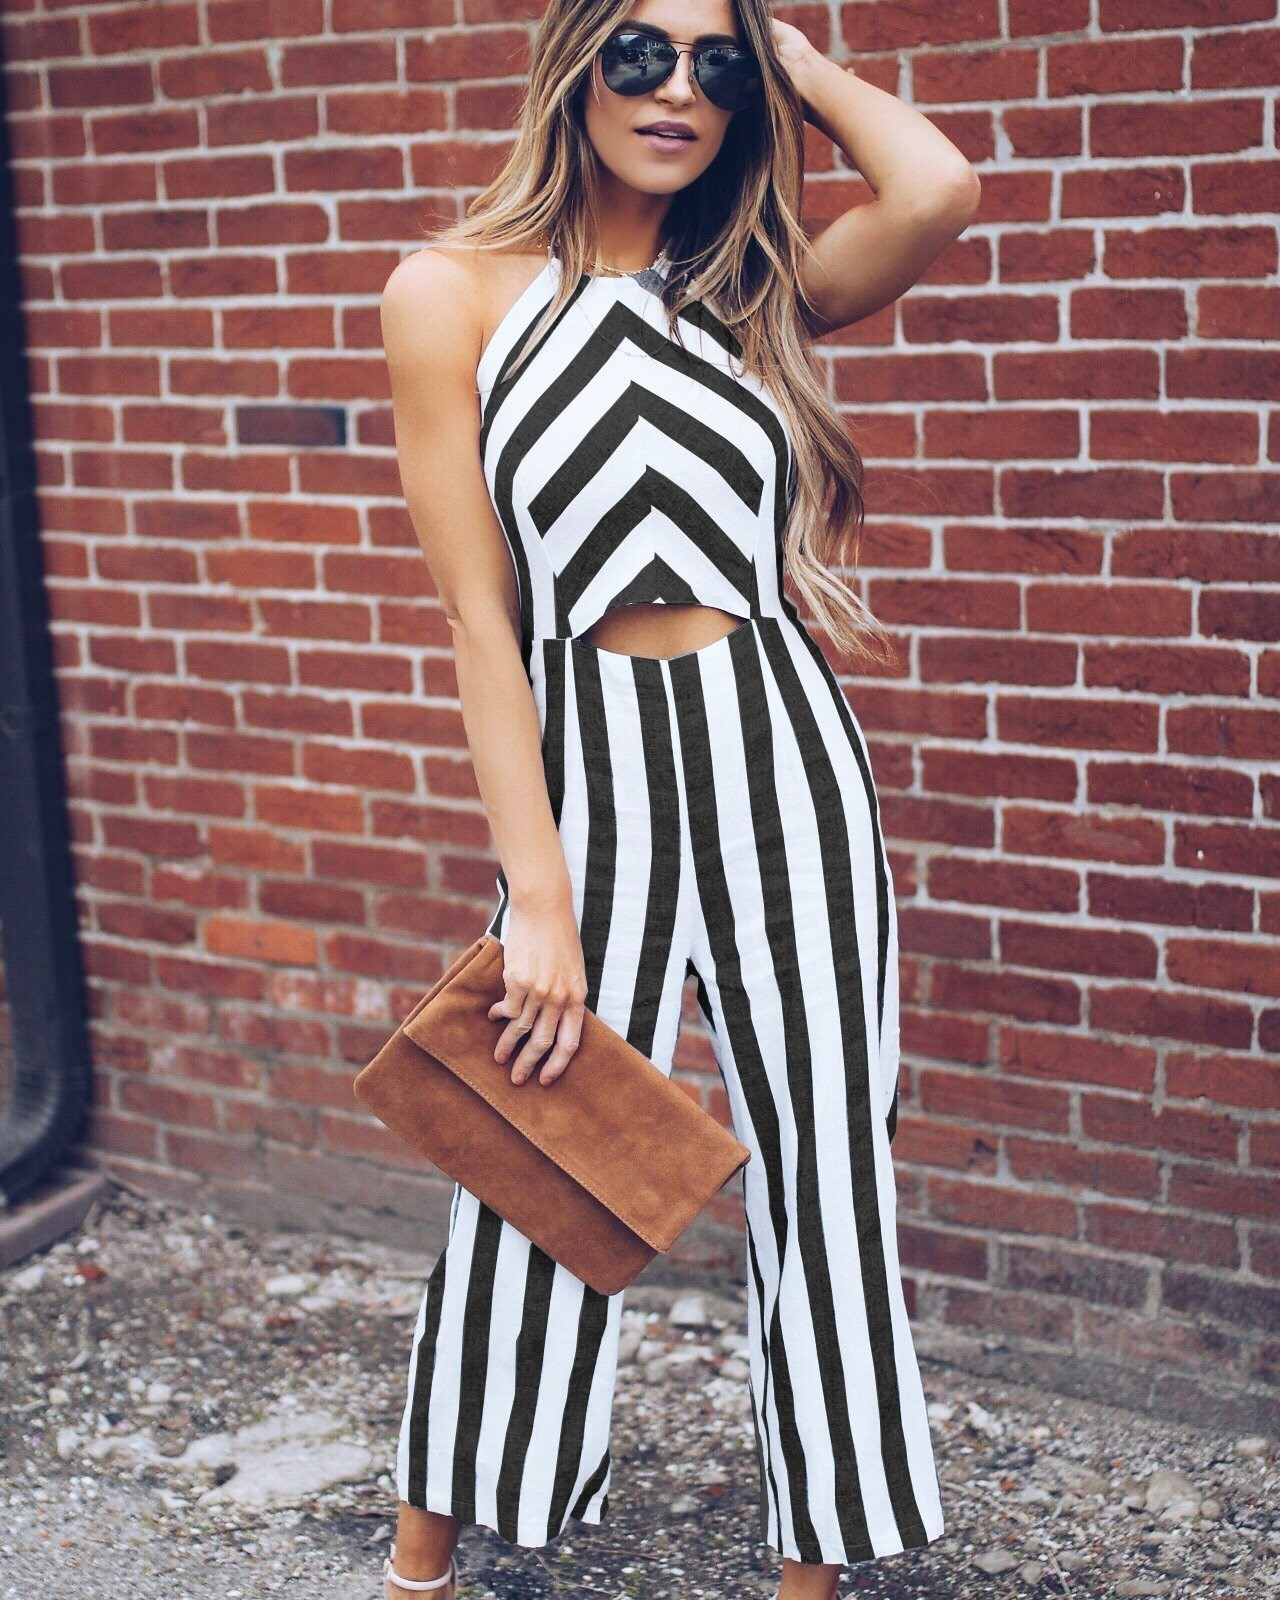 f16f9d6ea2a32 Summer Fashion Women Backless Halter Jumpsuits Hollow Out Romper Femme  Sleeveless Beach Striped  Product No  3464214. Item specifics  Seller  SKU VEibKvYDsSt ...